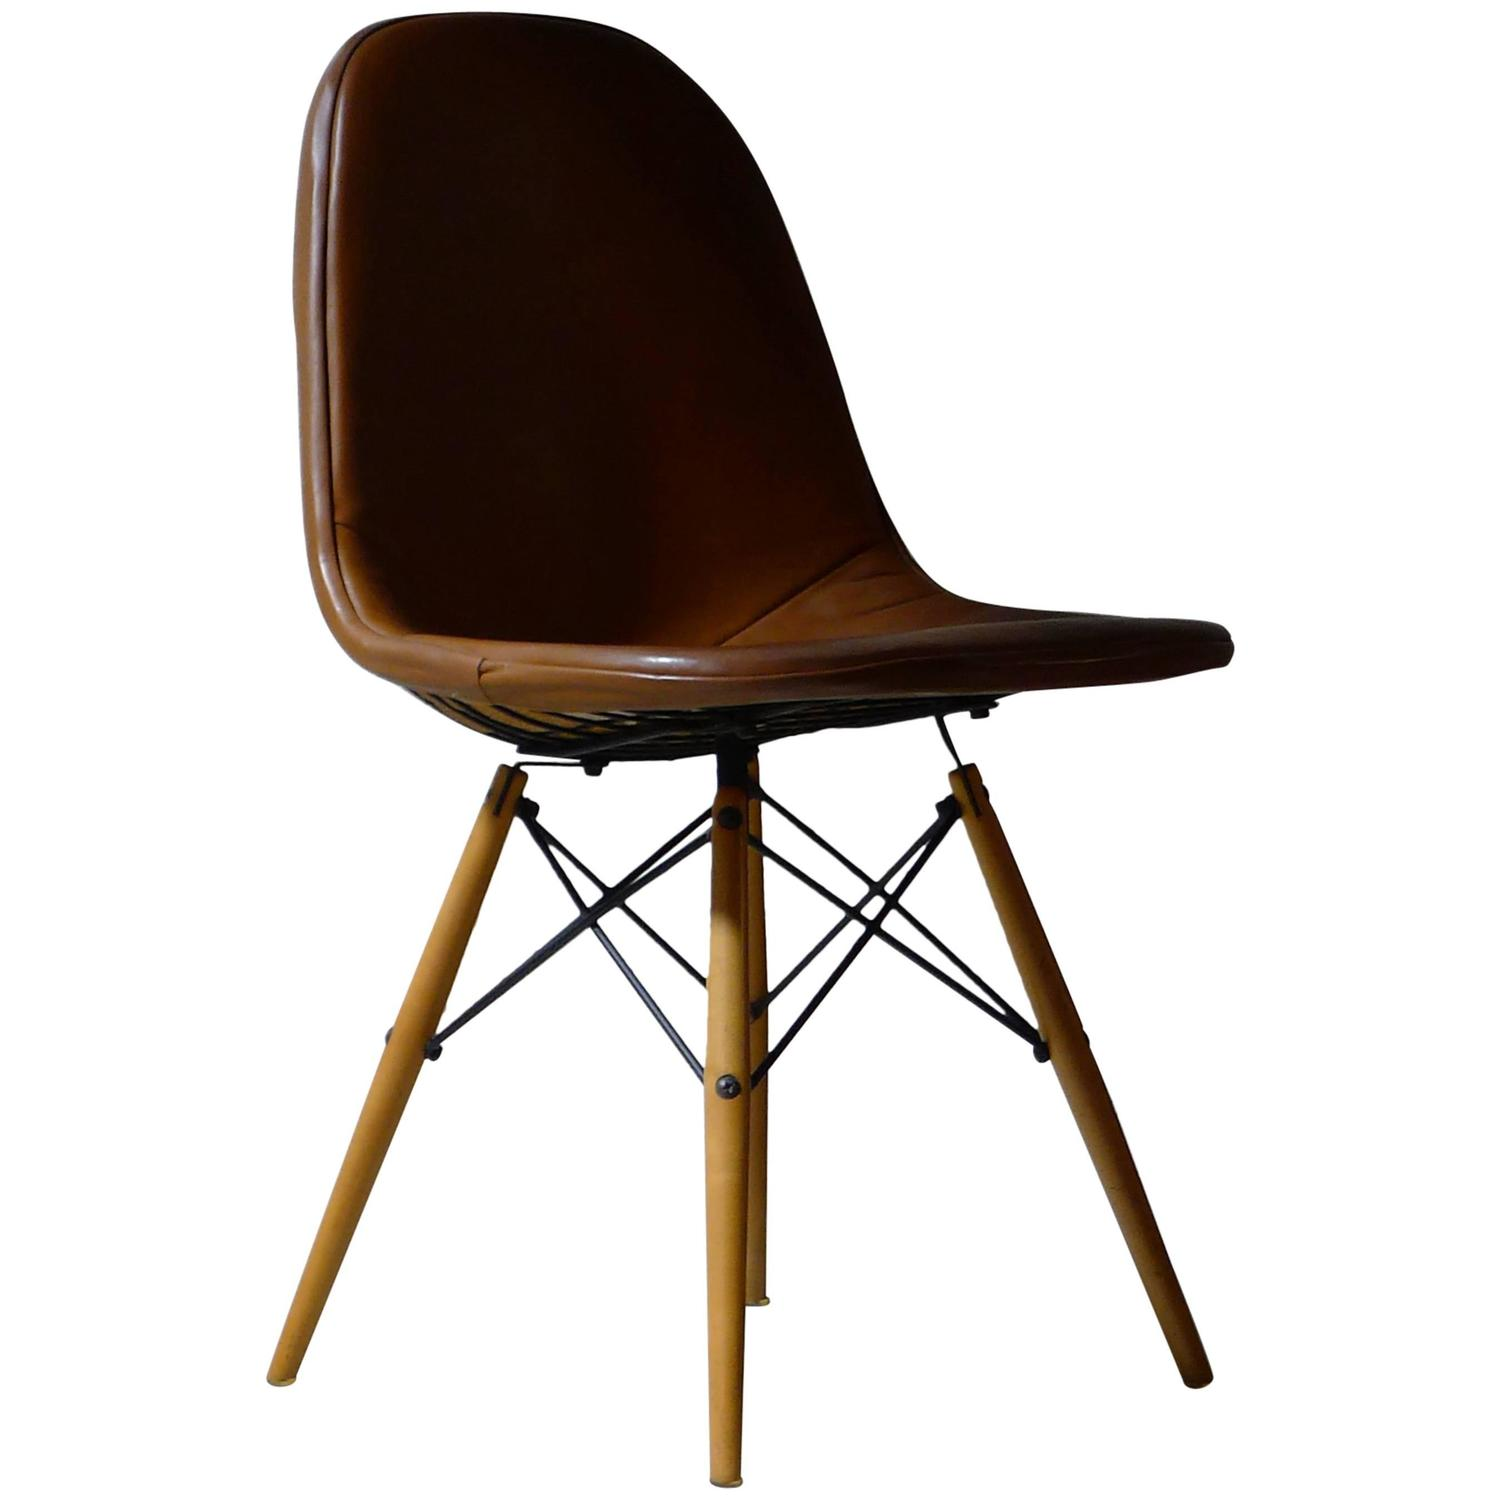 Eames wooden dowel chair home design for Eames dowel leg side chair